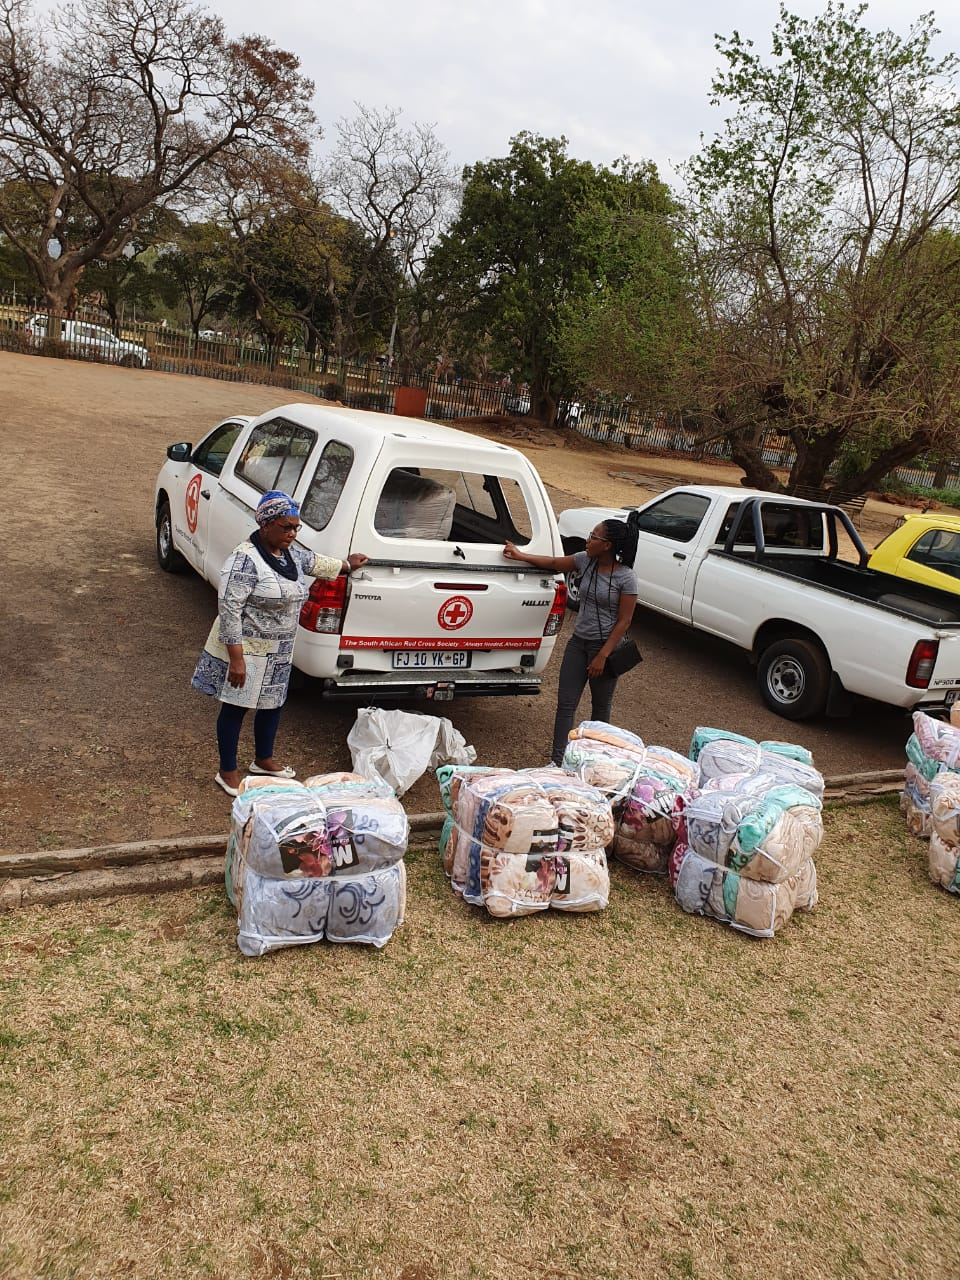 Red Cross responding to recent displaced victims of violence